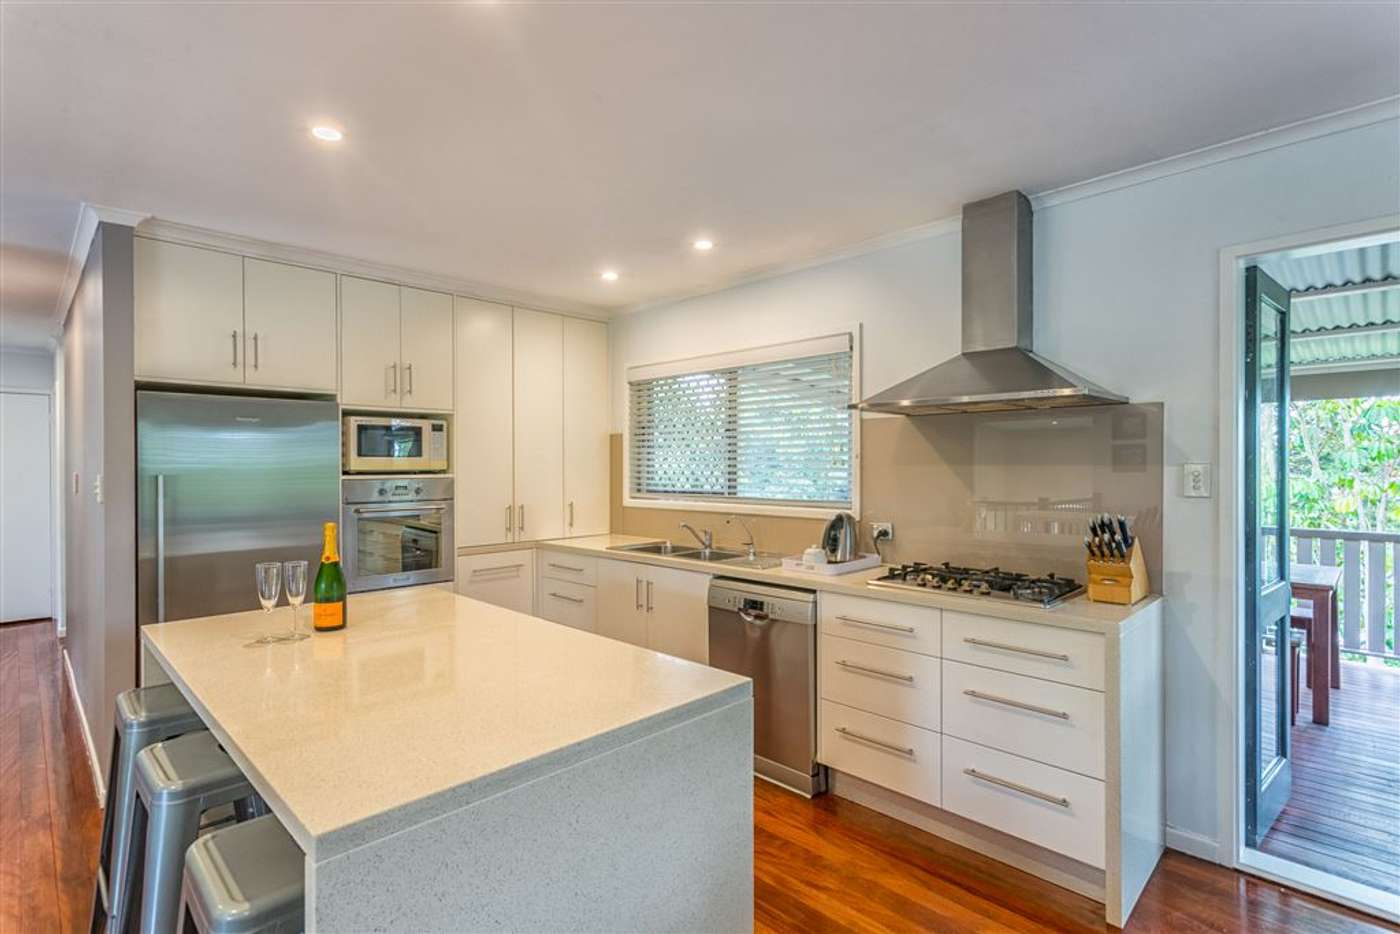 Main view of Homely house listing, 22 Chaplin Street, Stafford Heights QLD 4053